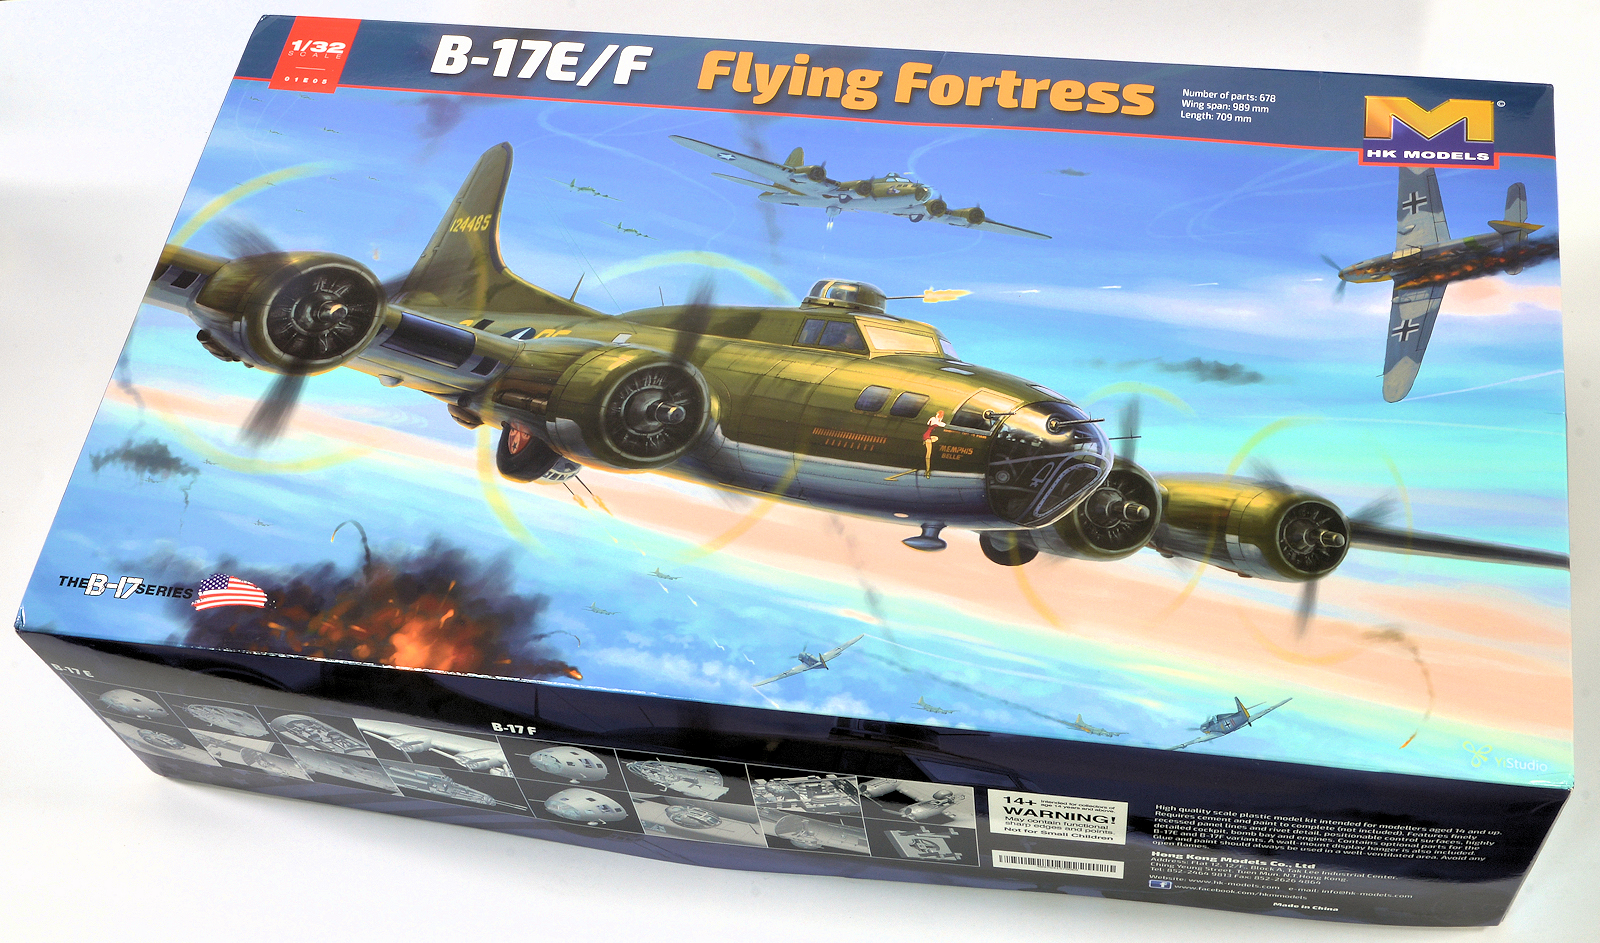 hight resolution of we have been keeping lukas powder dry for many far too many weeks he might say in showing you his progress of hk models new b 17 e f kit in massive